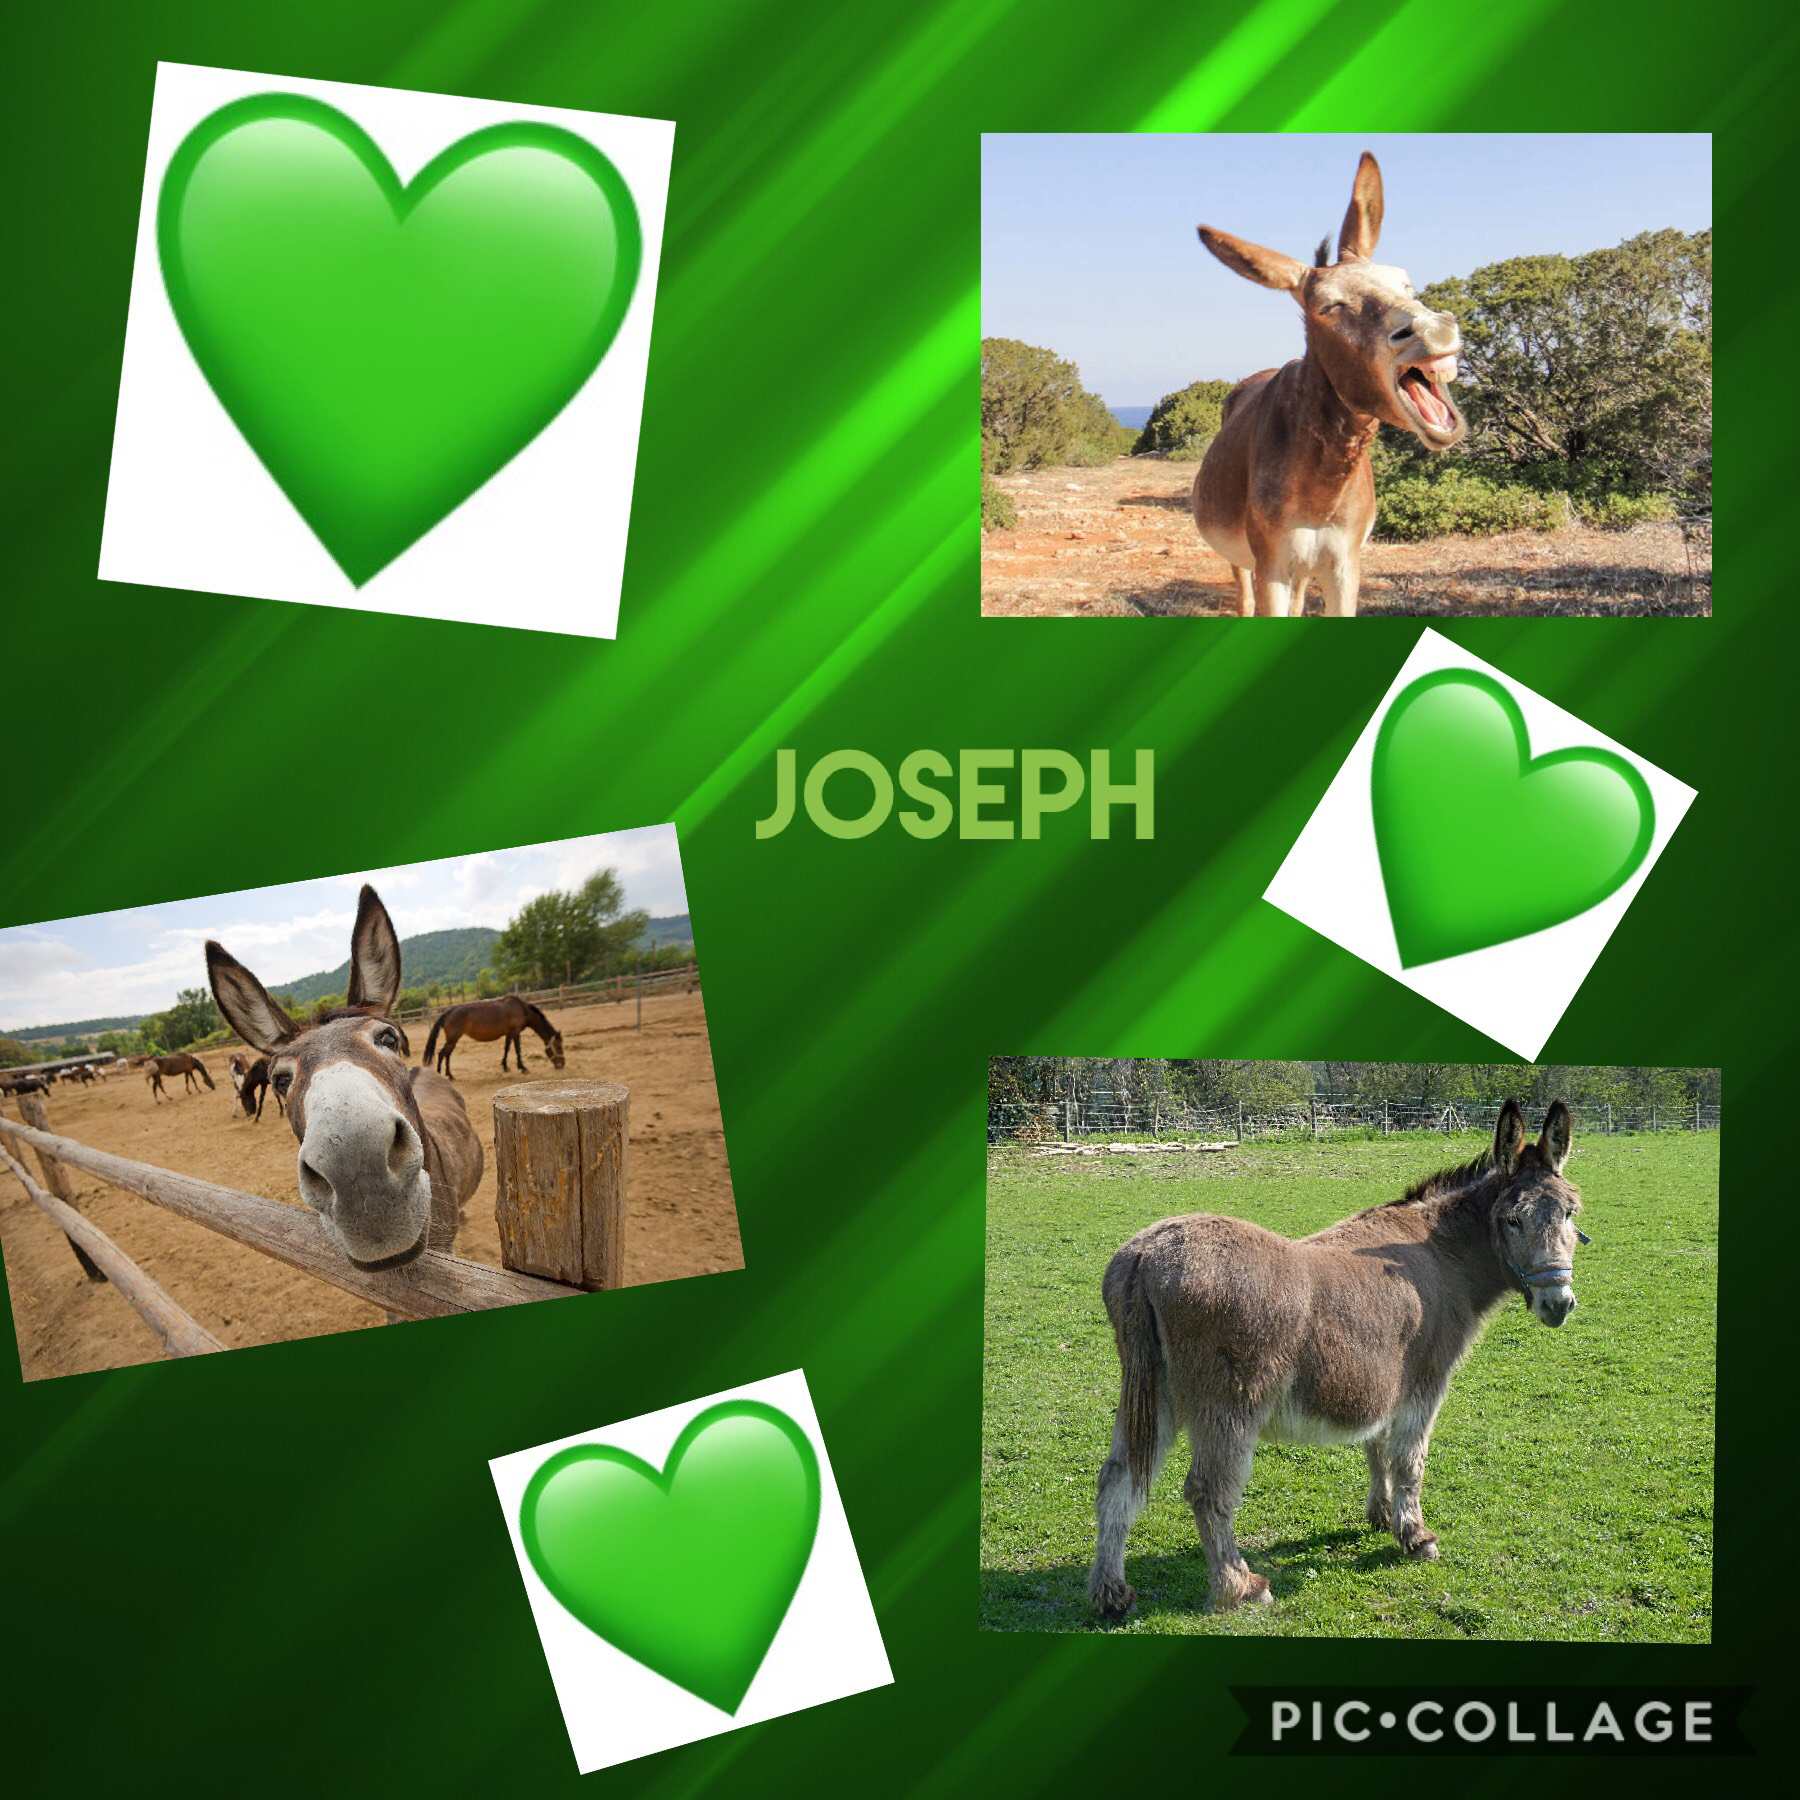 Joseph for the Win!💚💚